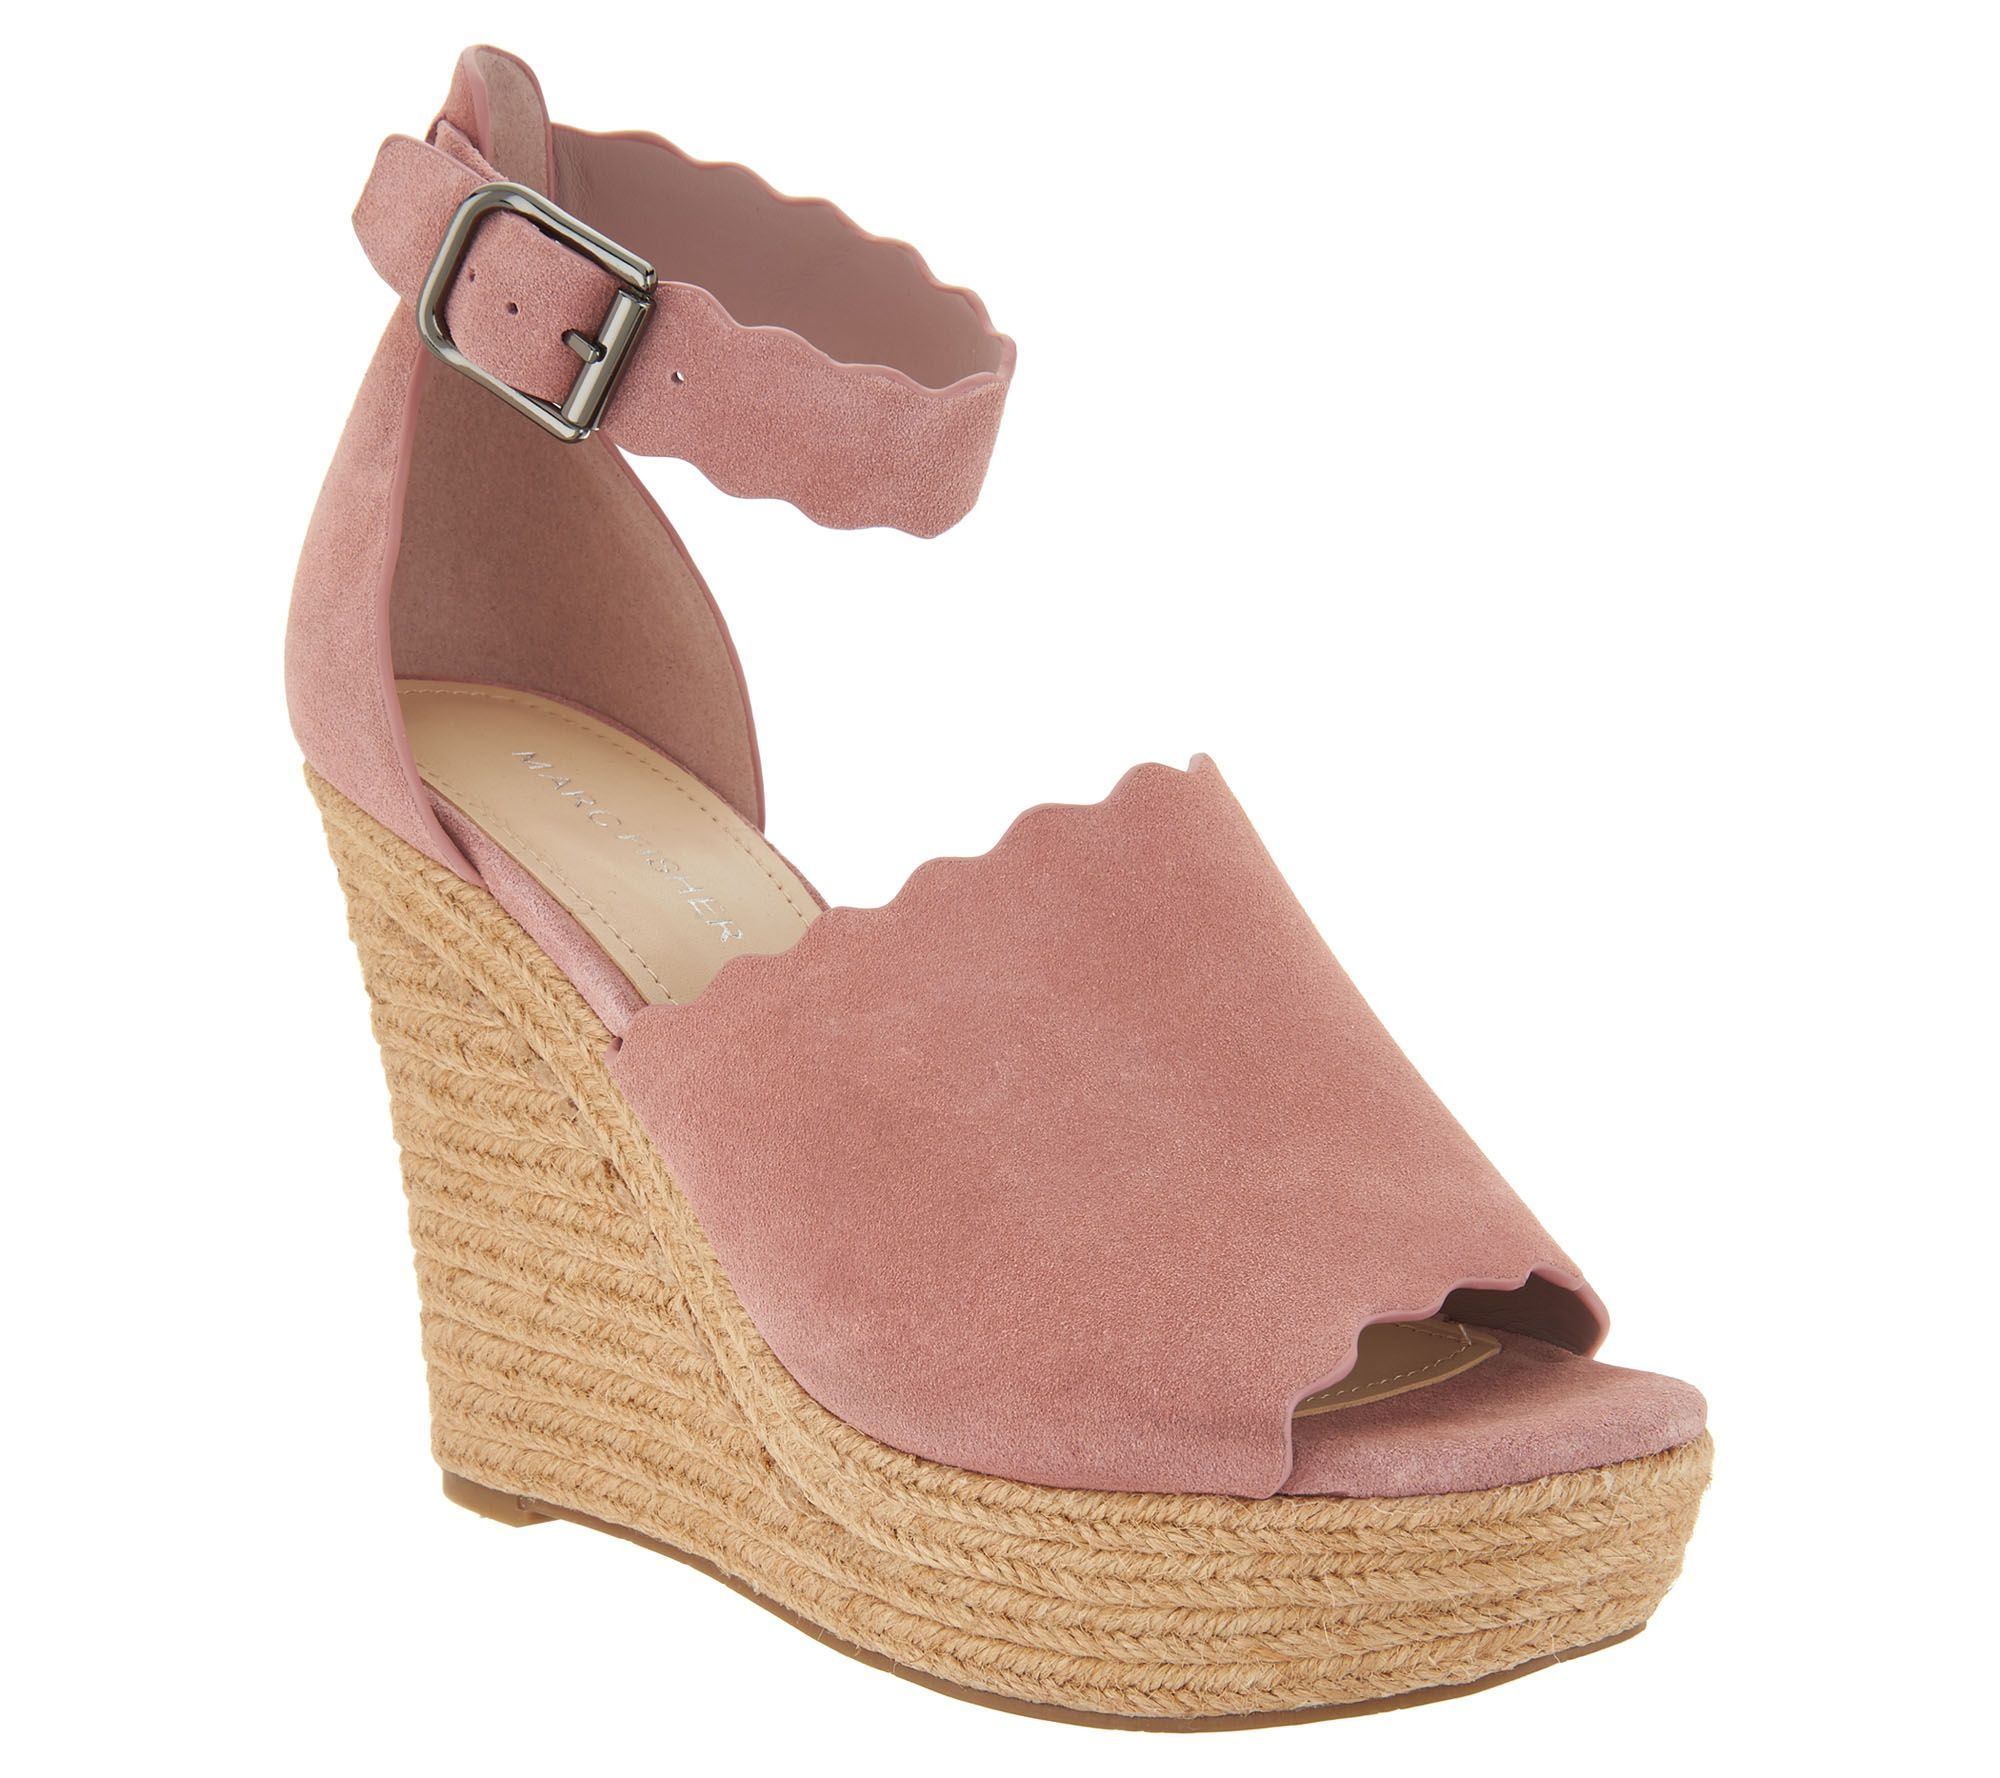 34c428f6b45 CHEAPER dupe to chloe scalloped espadrille sandal wedges